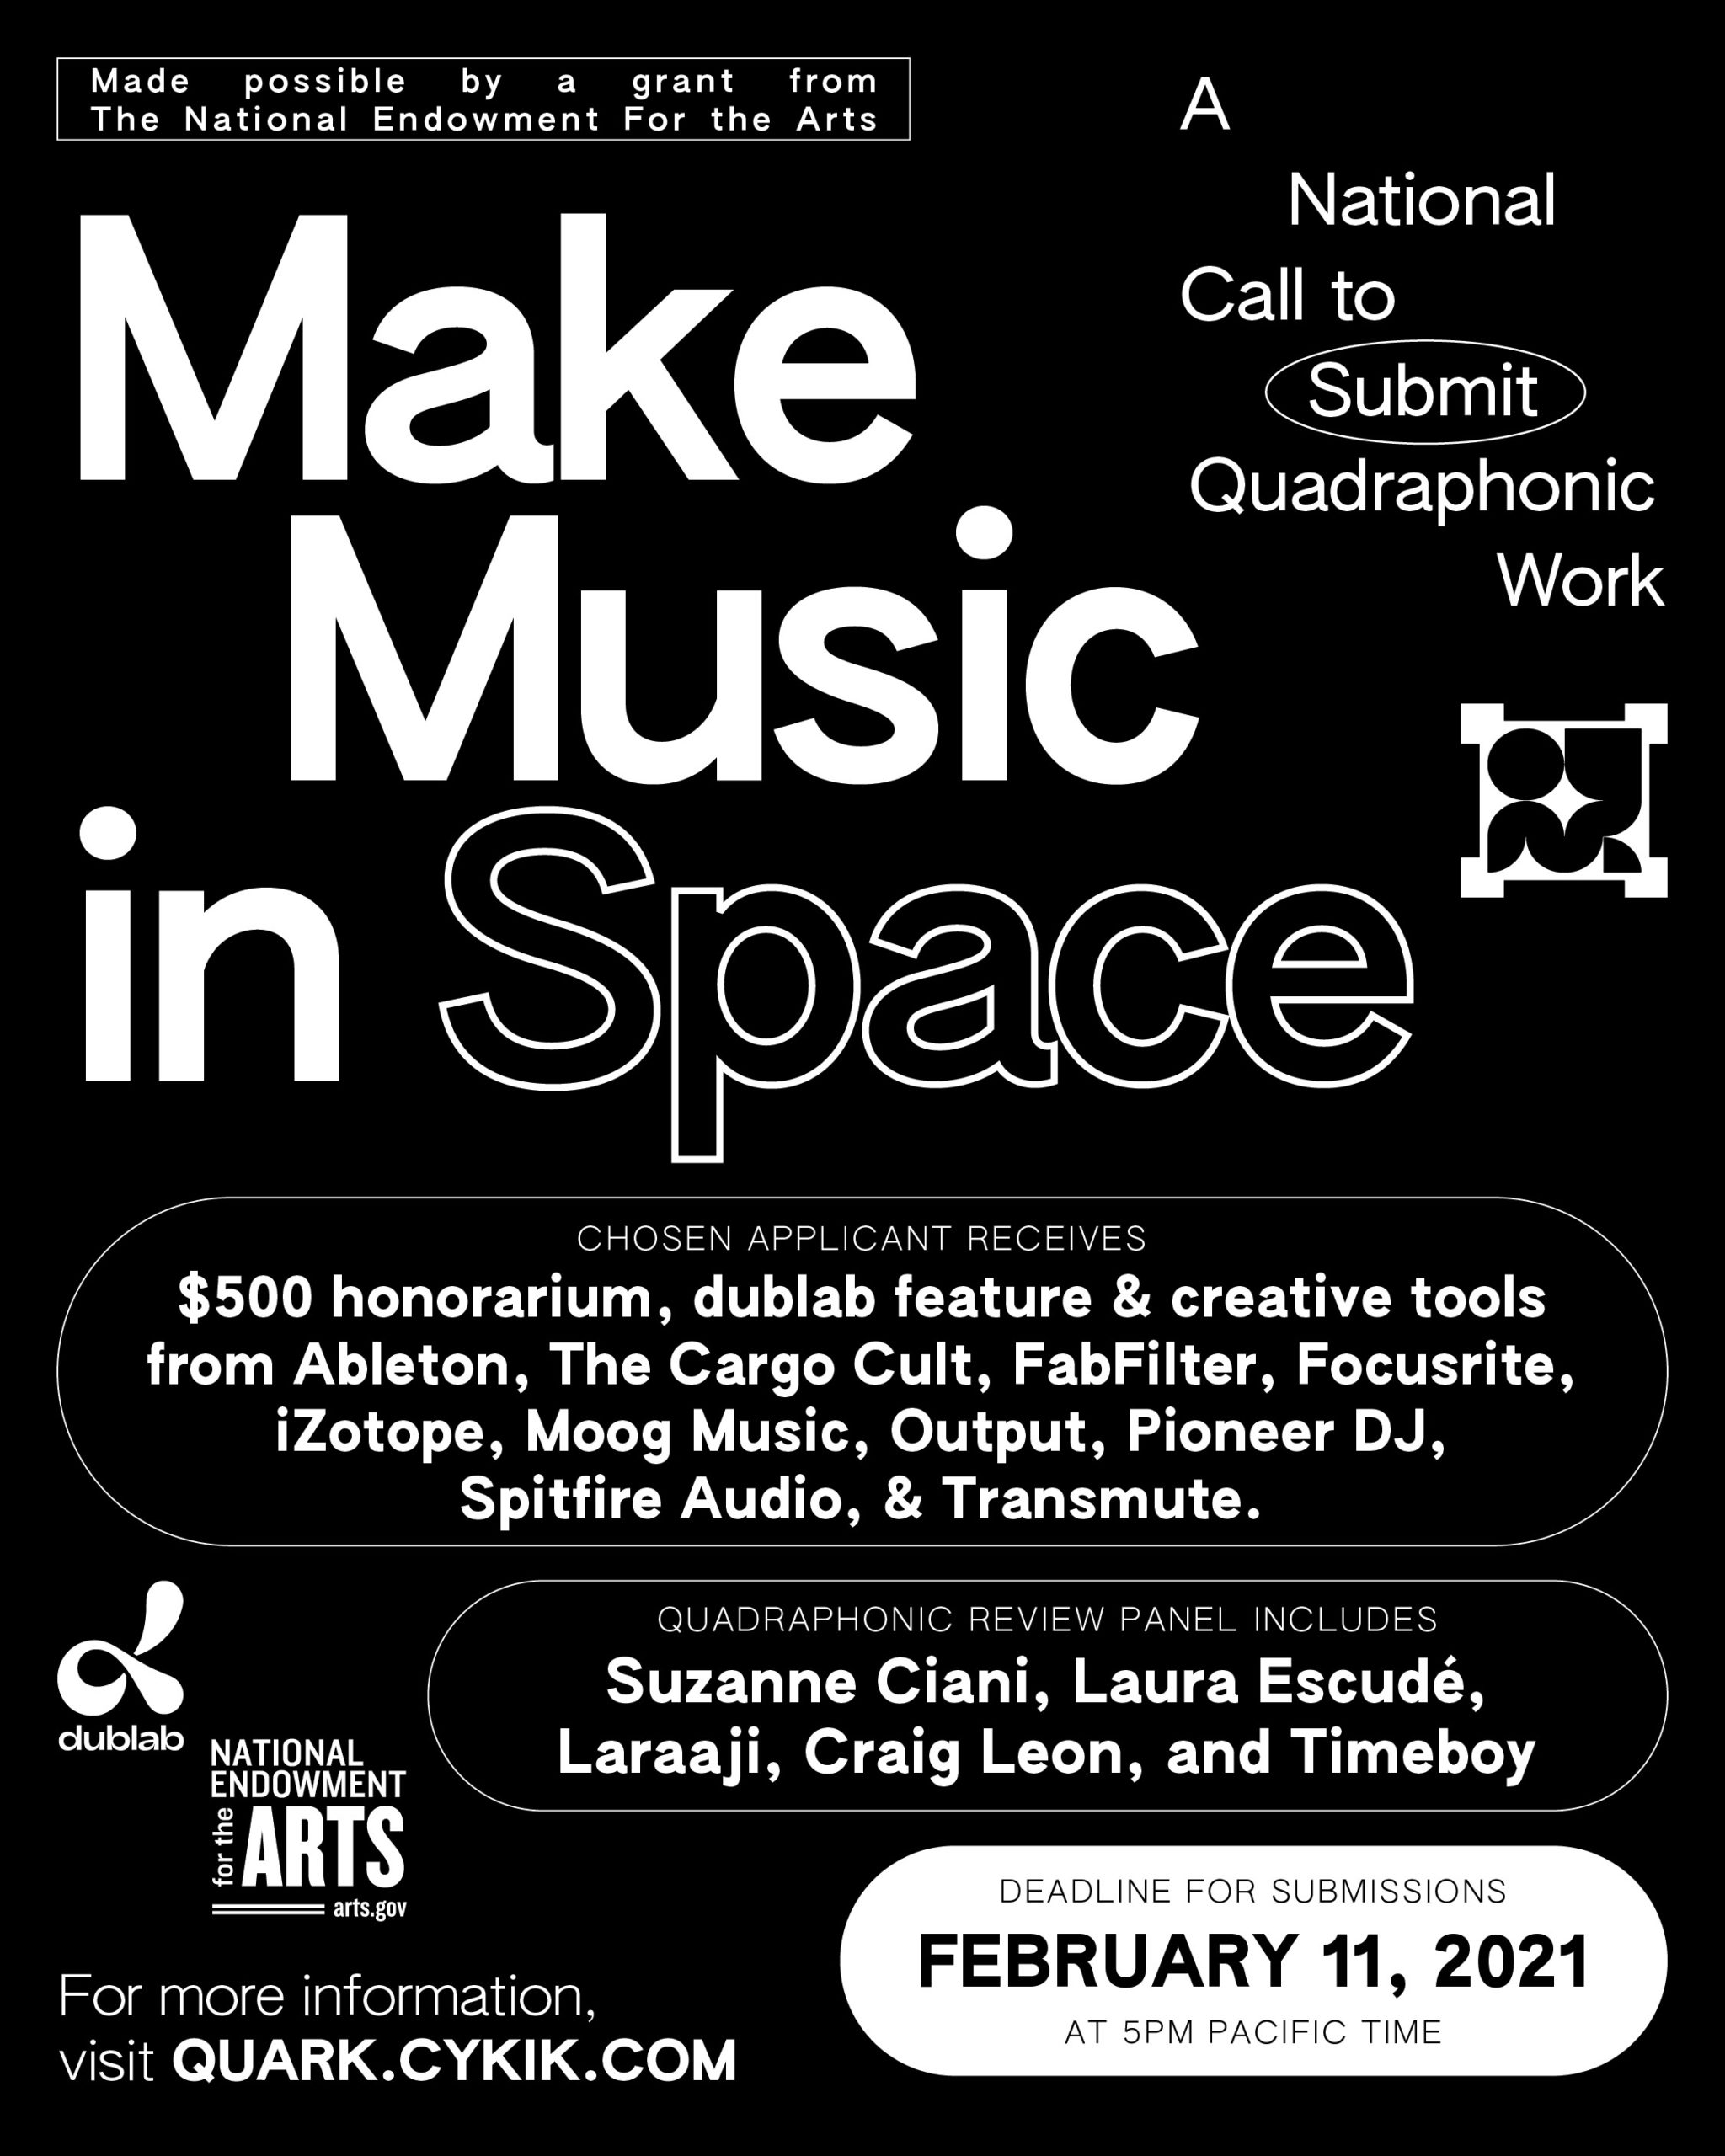 Make Music in Space